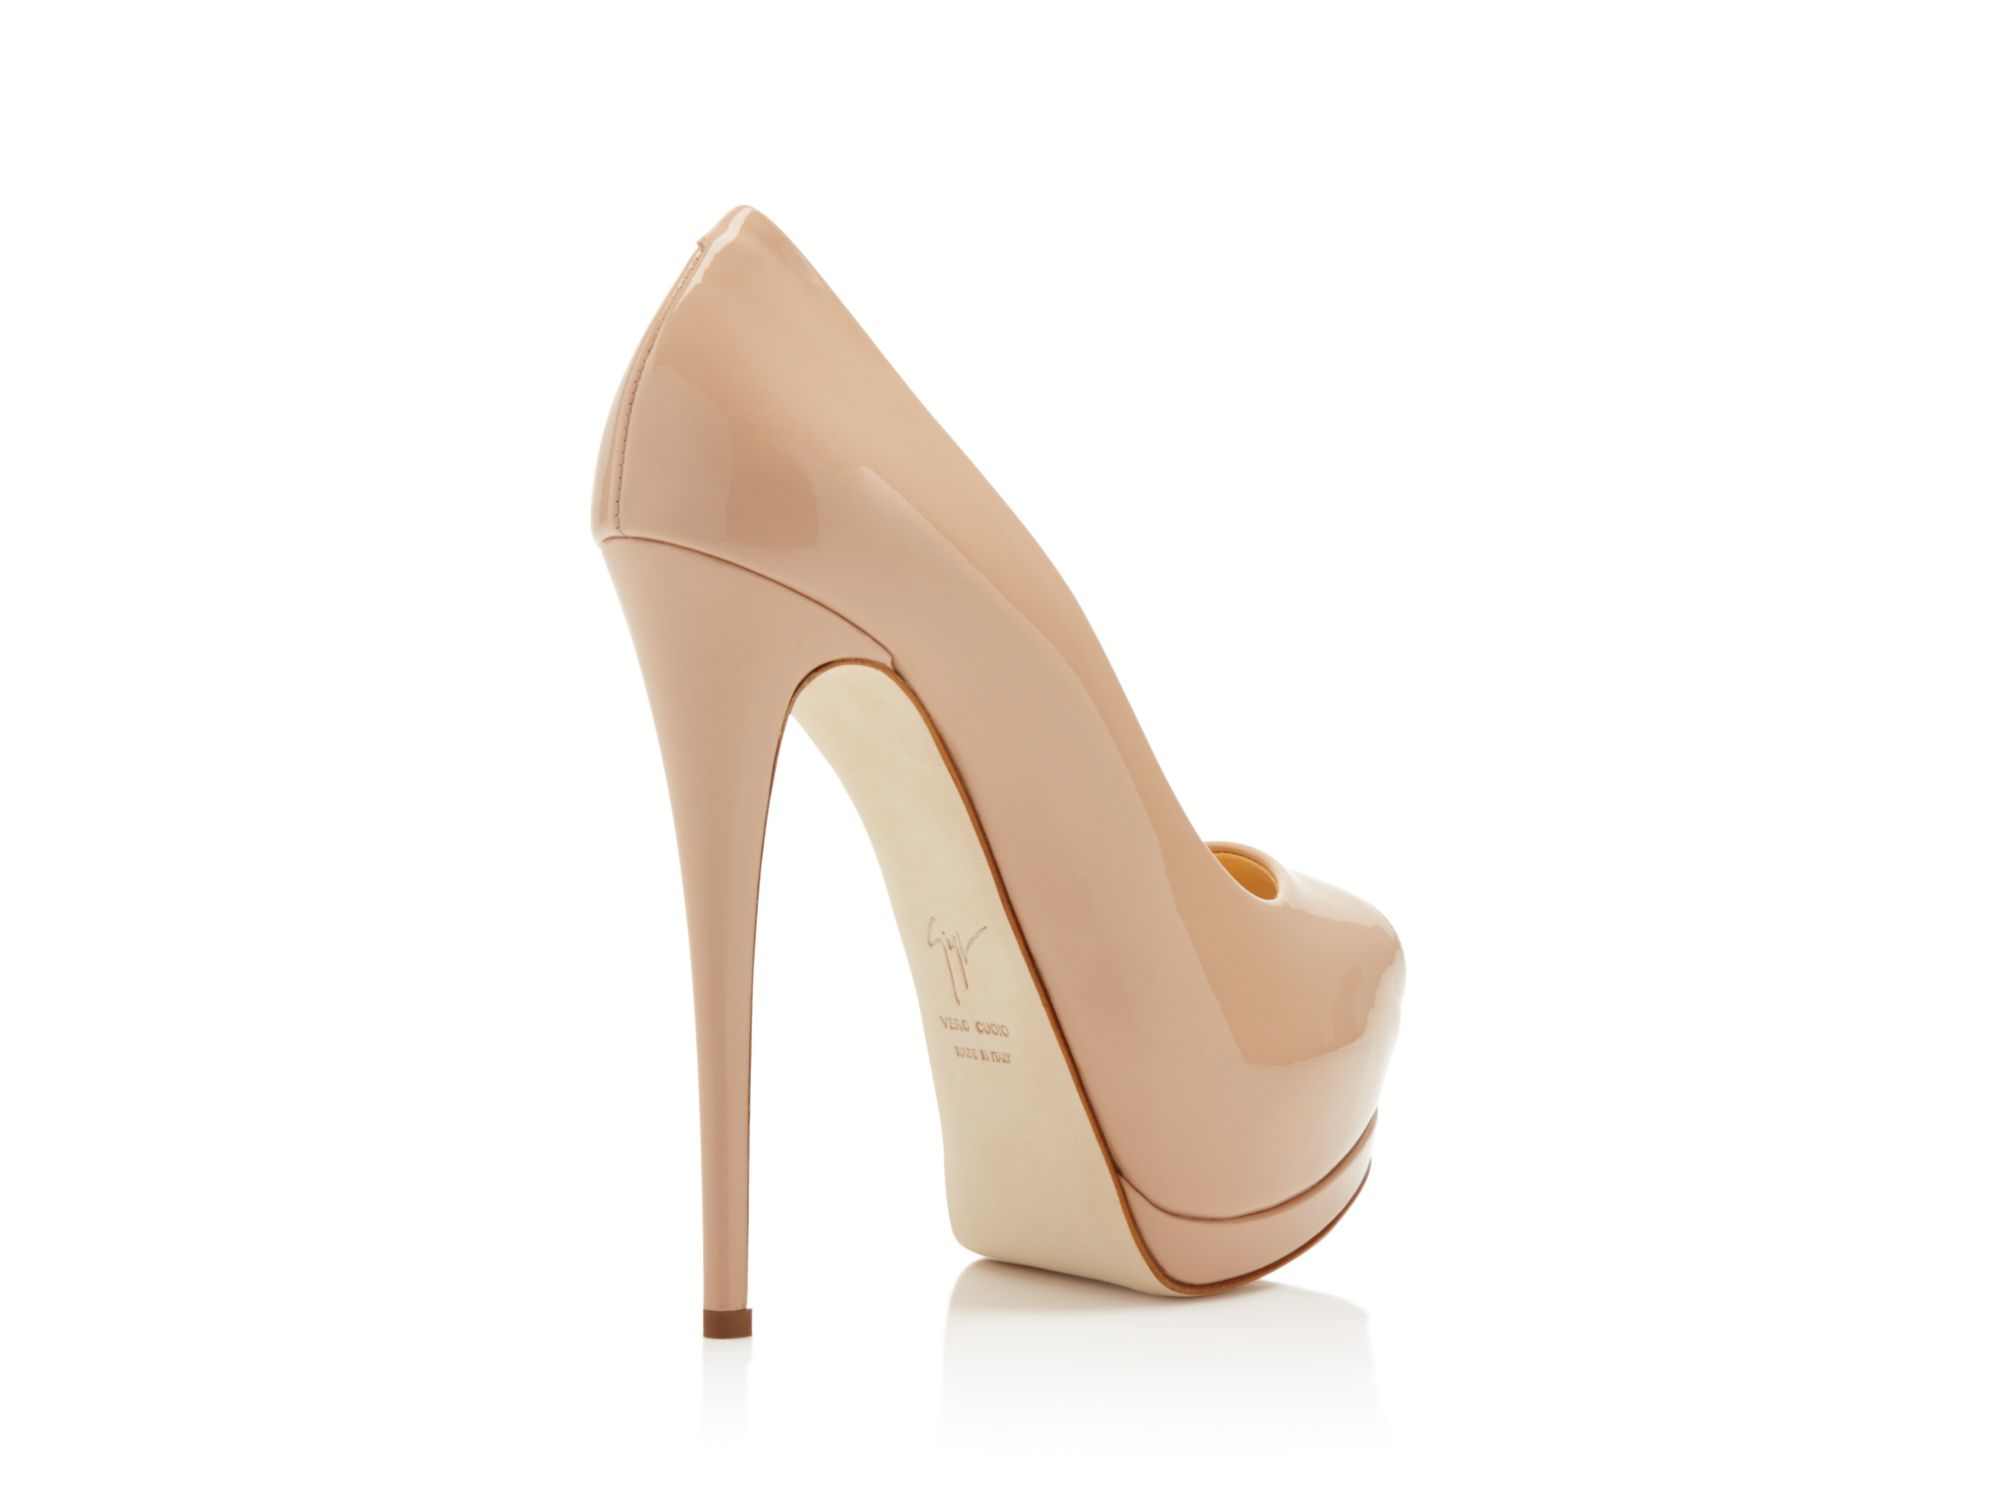 Giuseppe Zanotti Platform Pumps SHARON peeptoe leather perforated